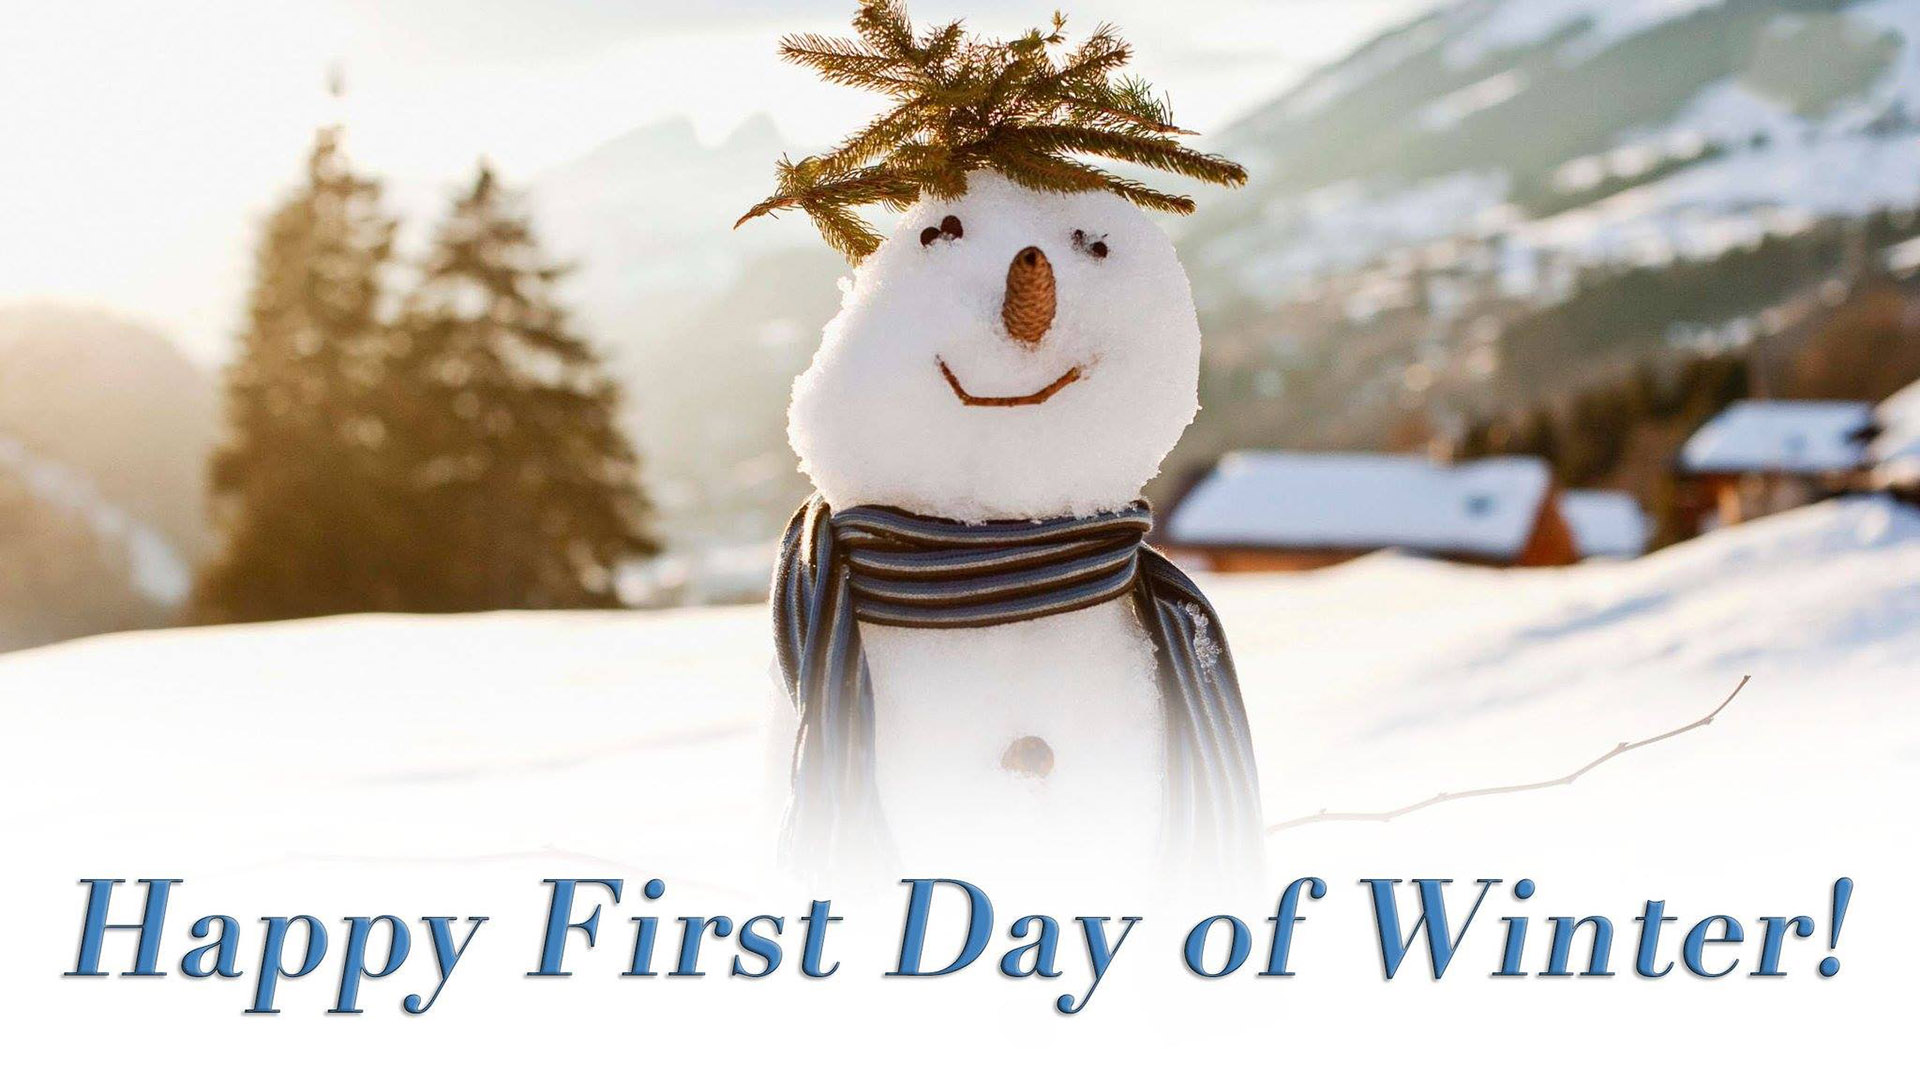 Happy First Day Of Winter Digital Signage Content